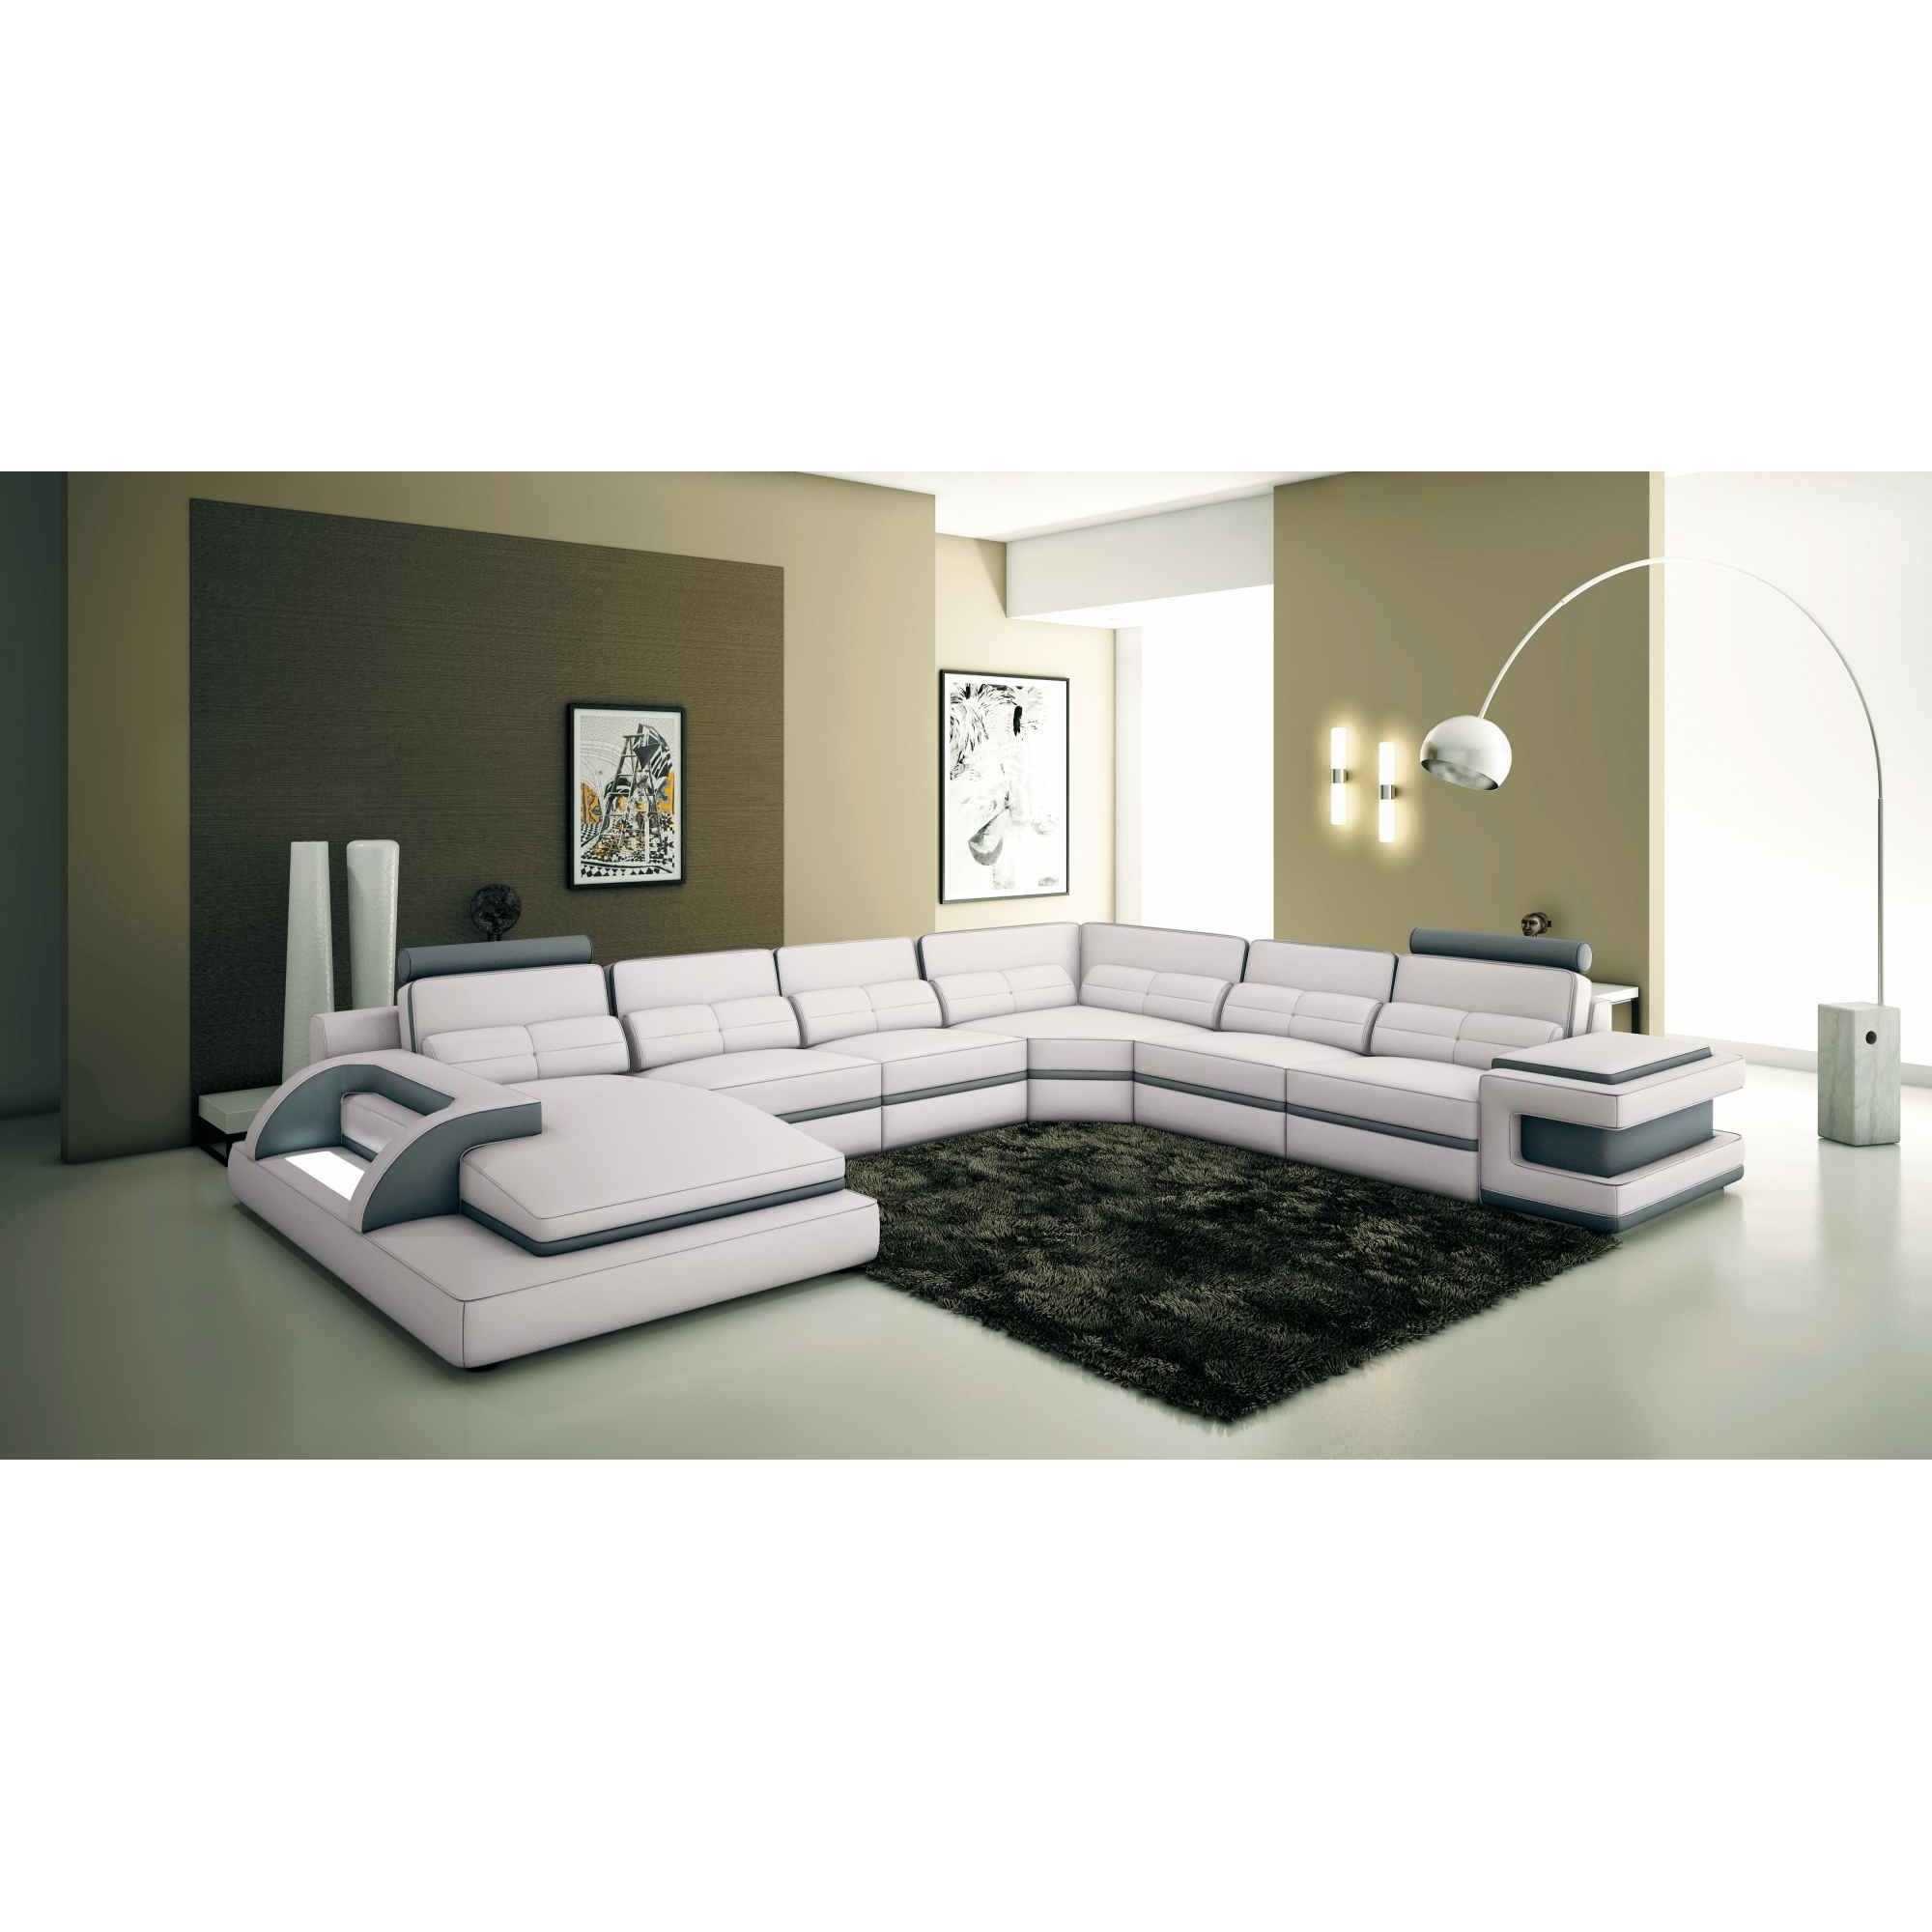 deco in paris 5 canape panoramique cuir blanc et gris. Black Bedroom Furniture Sets. Home Design Ideas